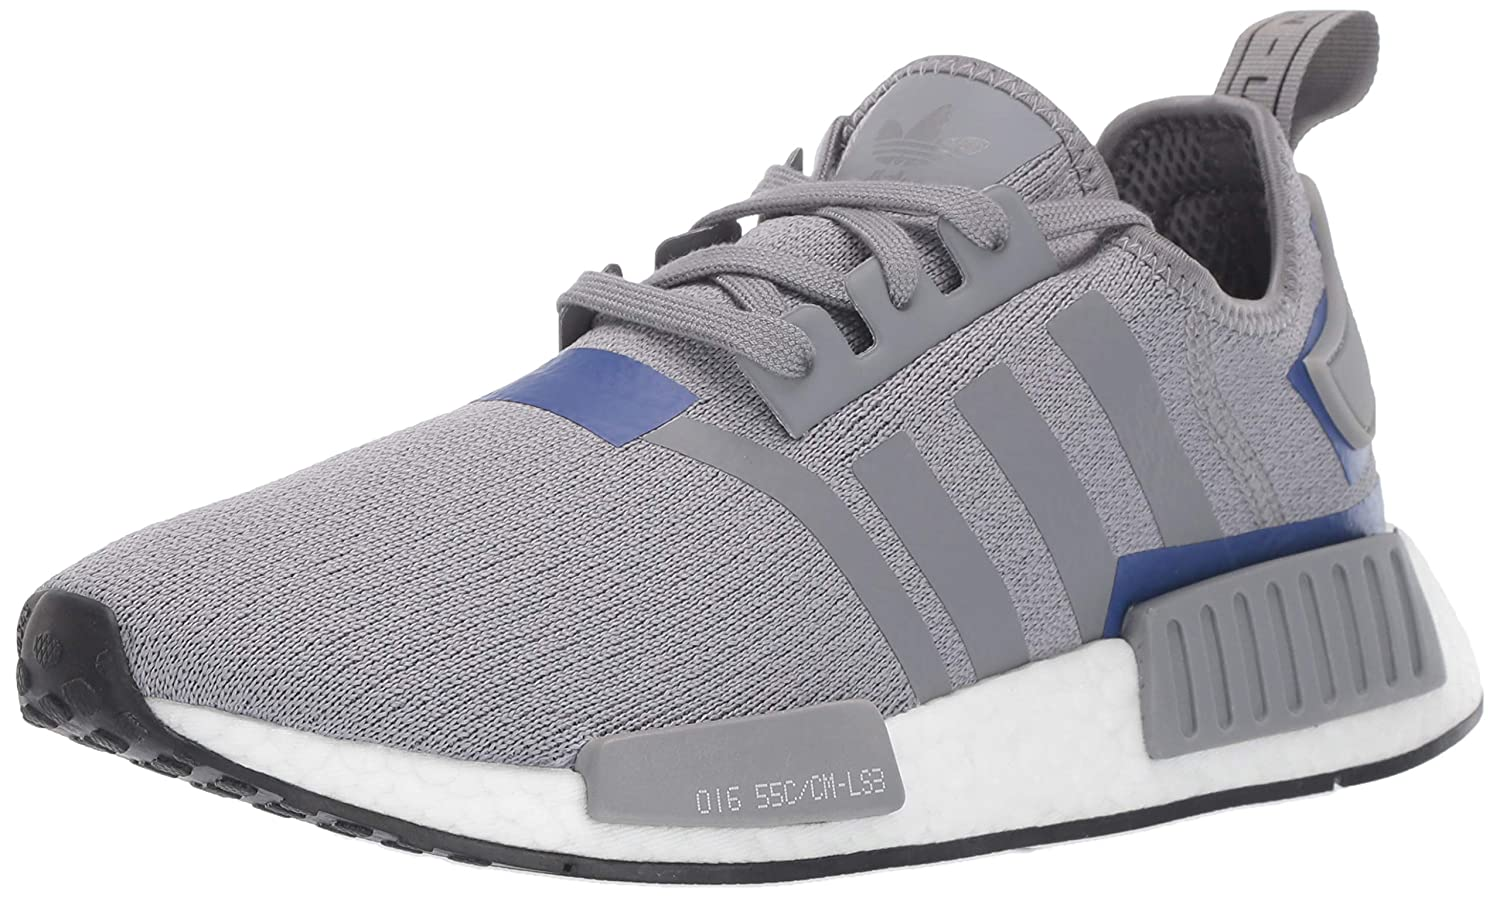 grau grau Active Blau adidas Originals Herren NMD_r1 Turnschuh, Blau Night Core schwarz